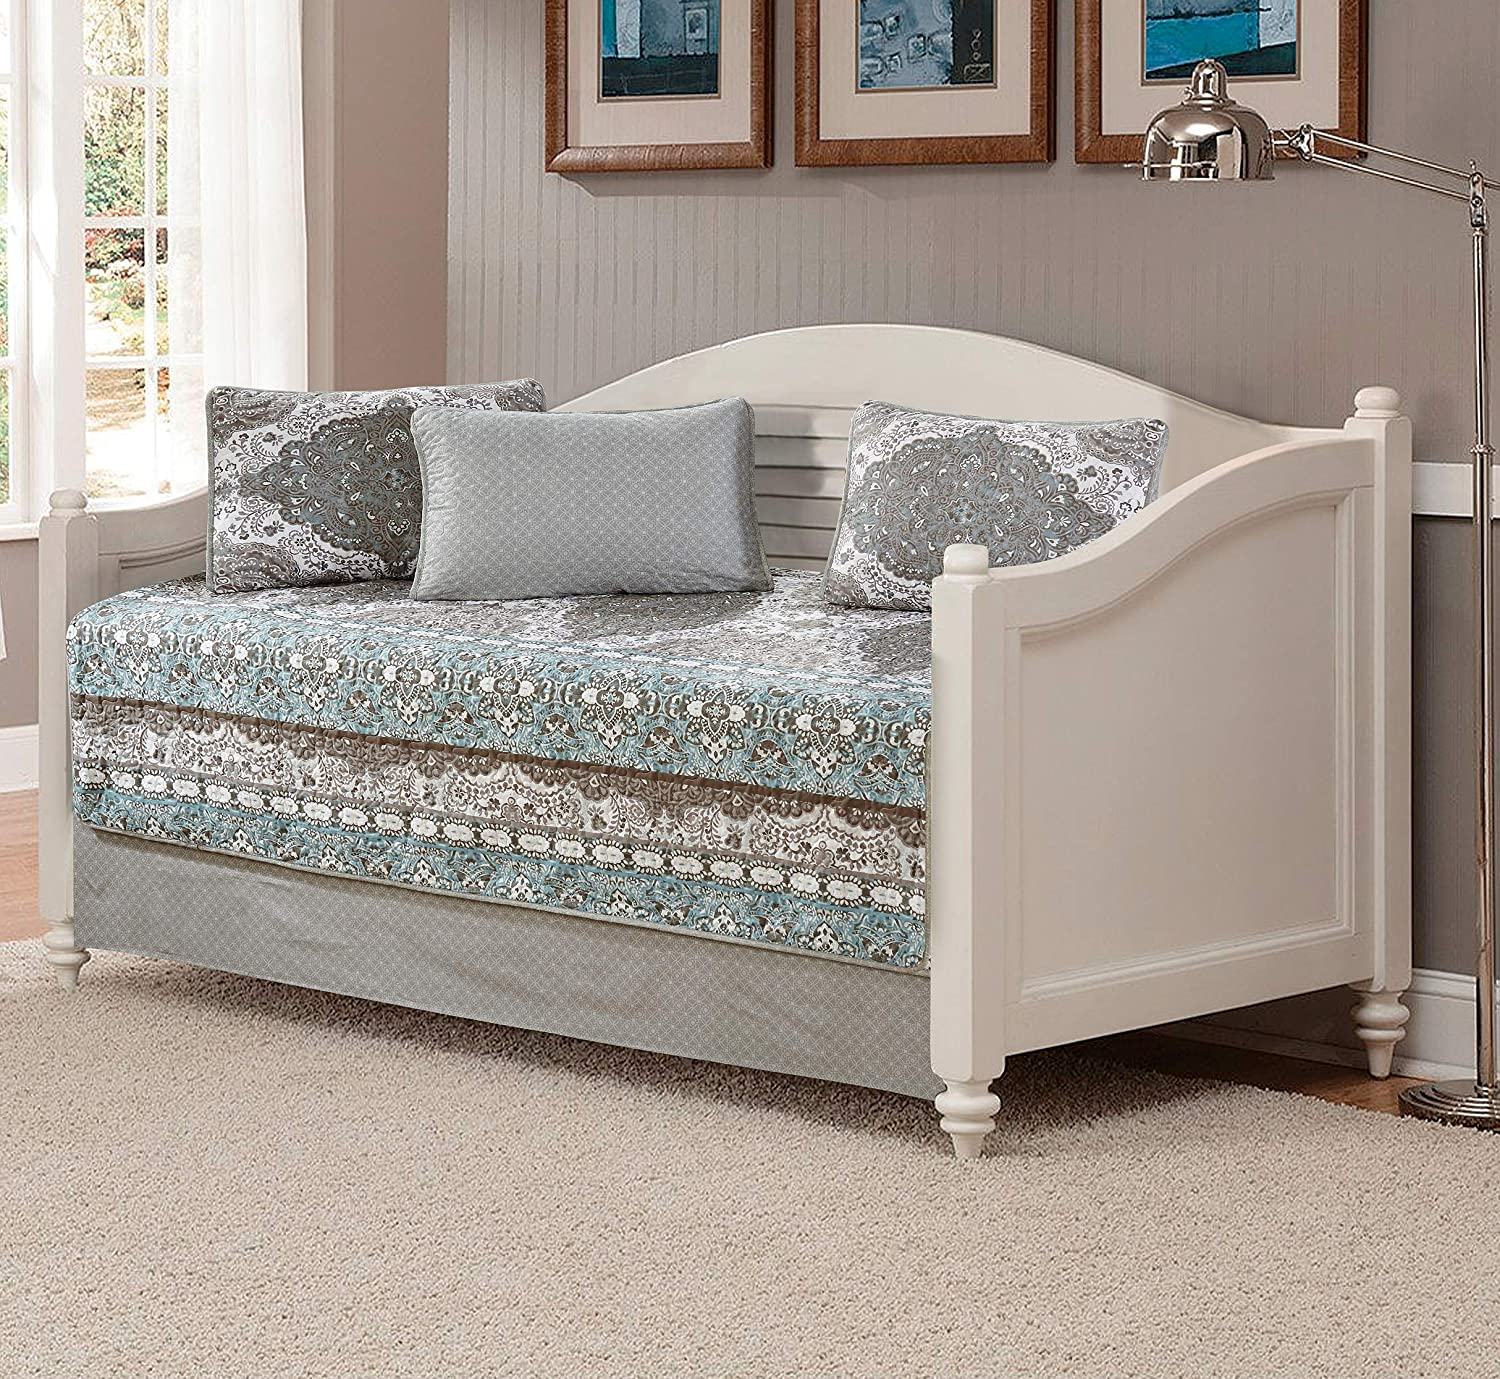 Fancy Collection 5pc Day Bed Over item handling ☆ Quilted Coverlet Daybed Sa New Max 89% OFF Set